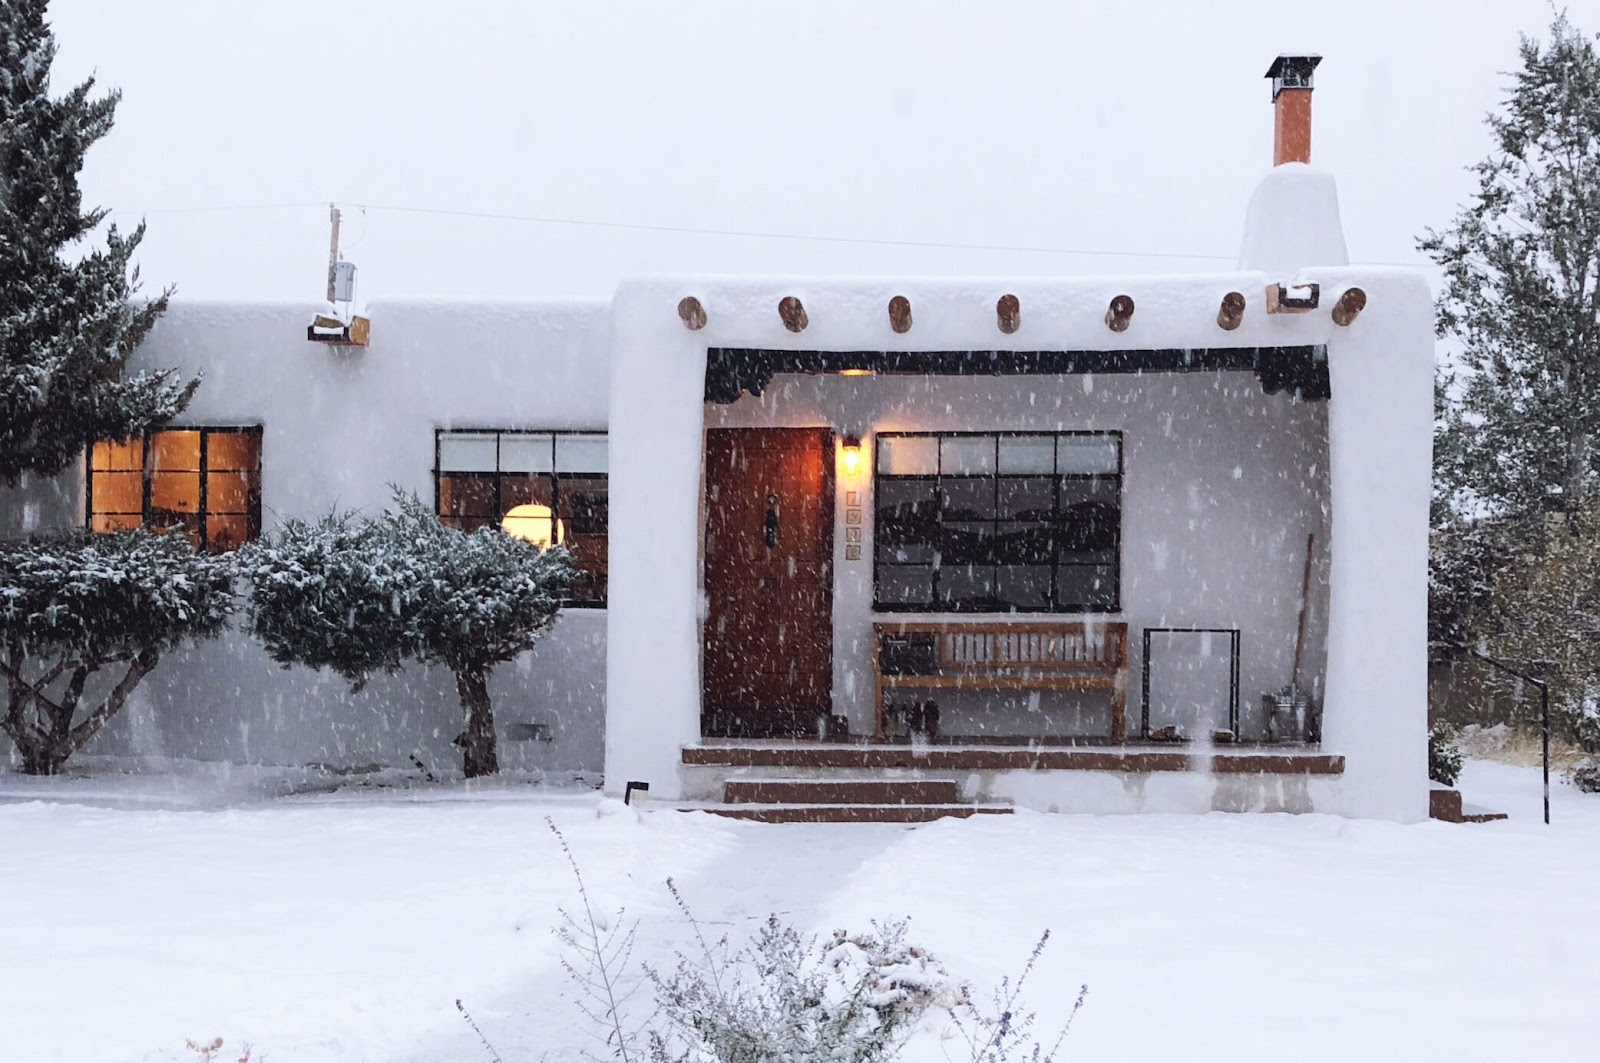 Anna Dorfman's mid-century pueblo revival-style house in Santa Fe, New Mexico, covered in snow.